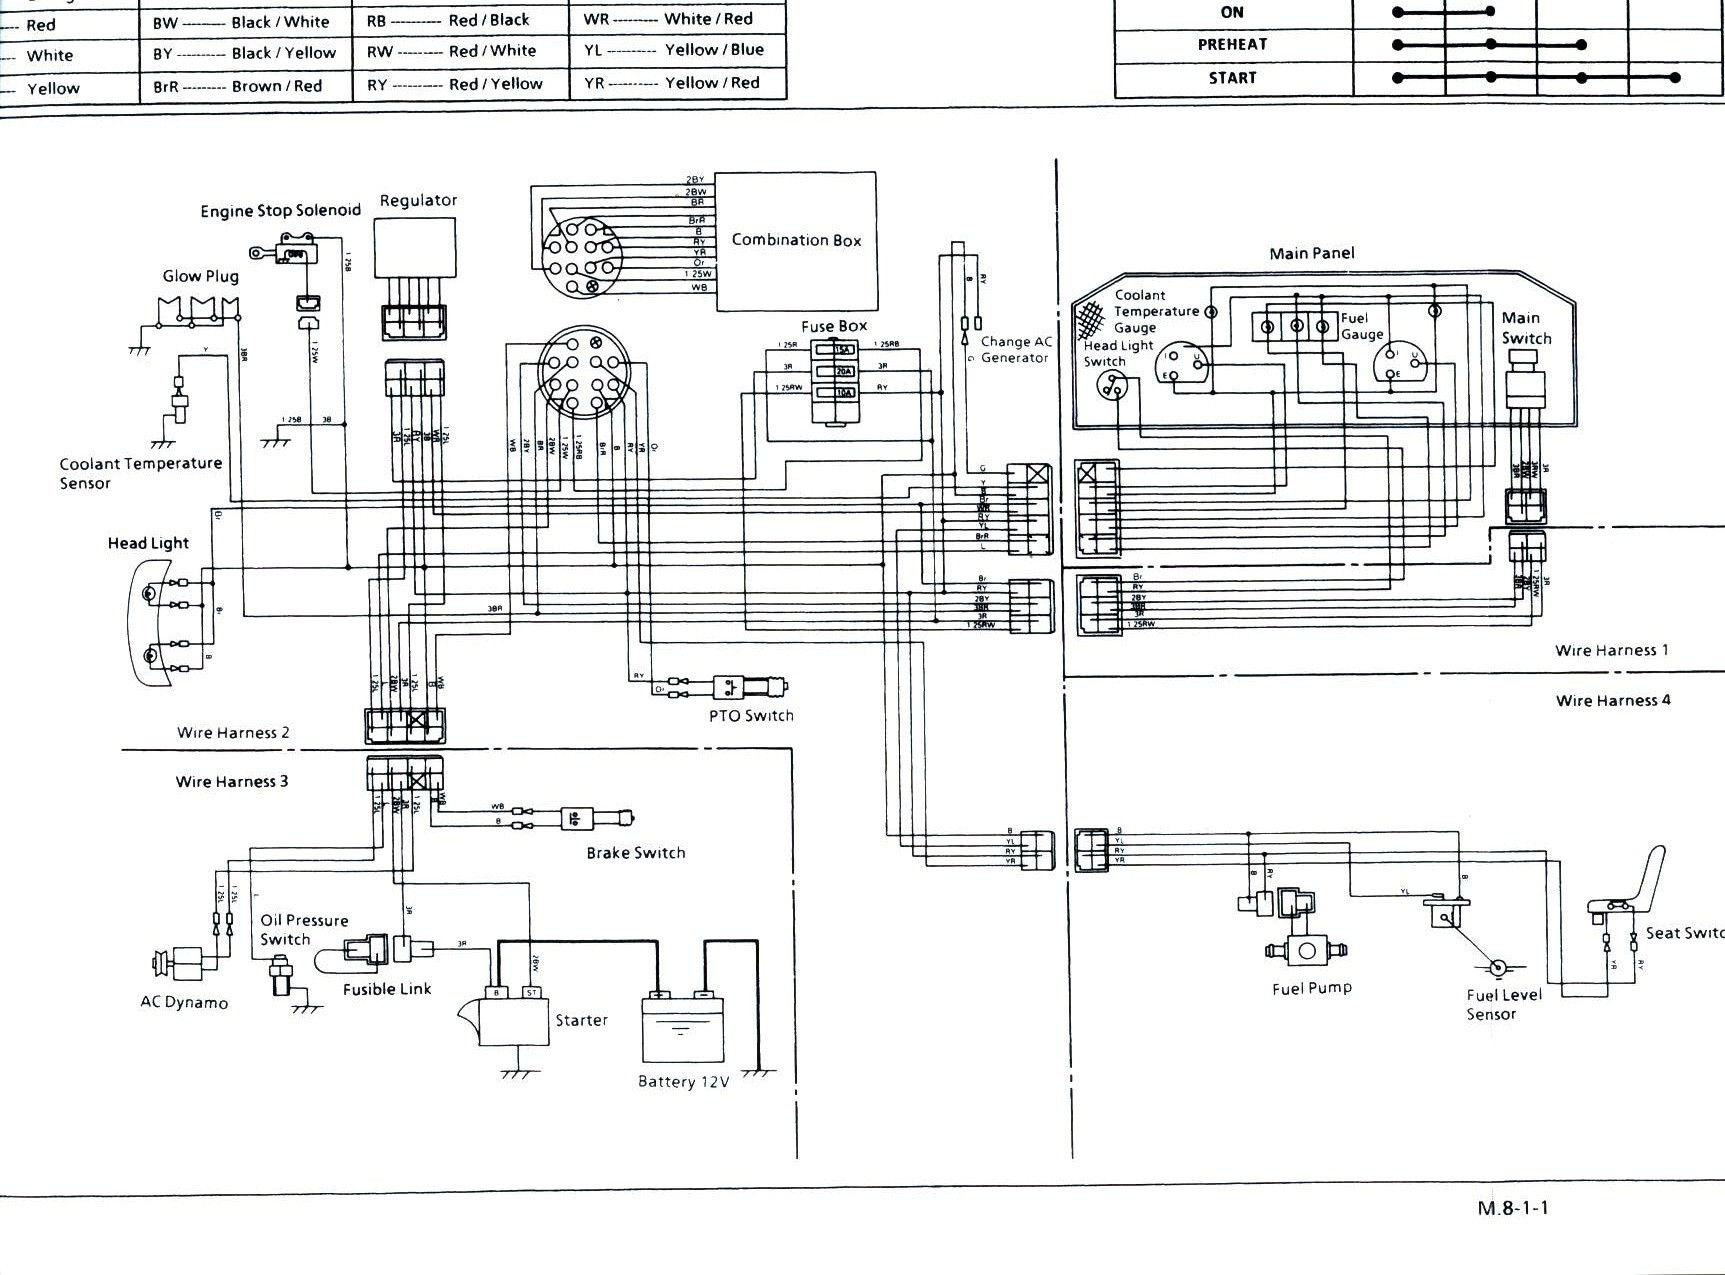 2230 Kubota Glow Plug Diagram - Great Installation Of Wiring Diagram • - Kubota Glow Plug Wiring Diagram